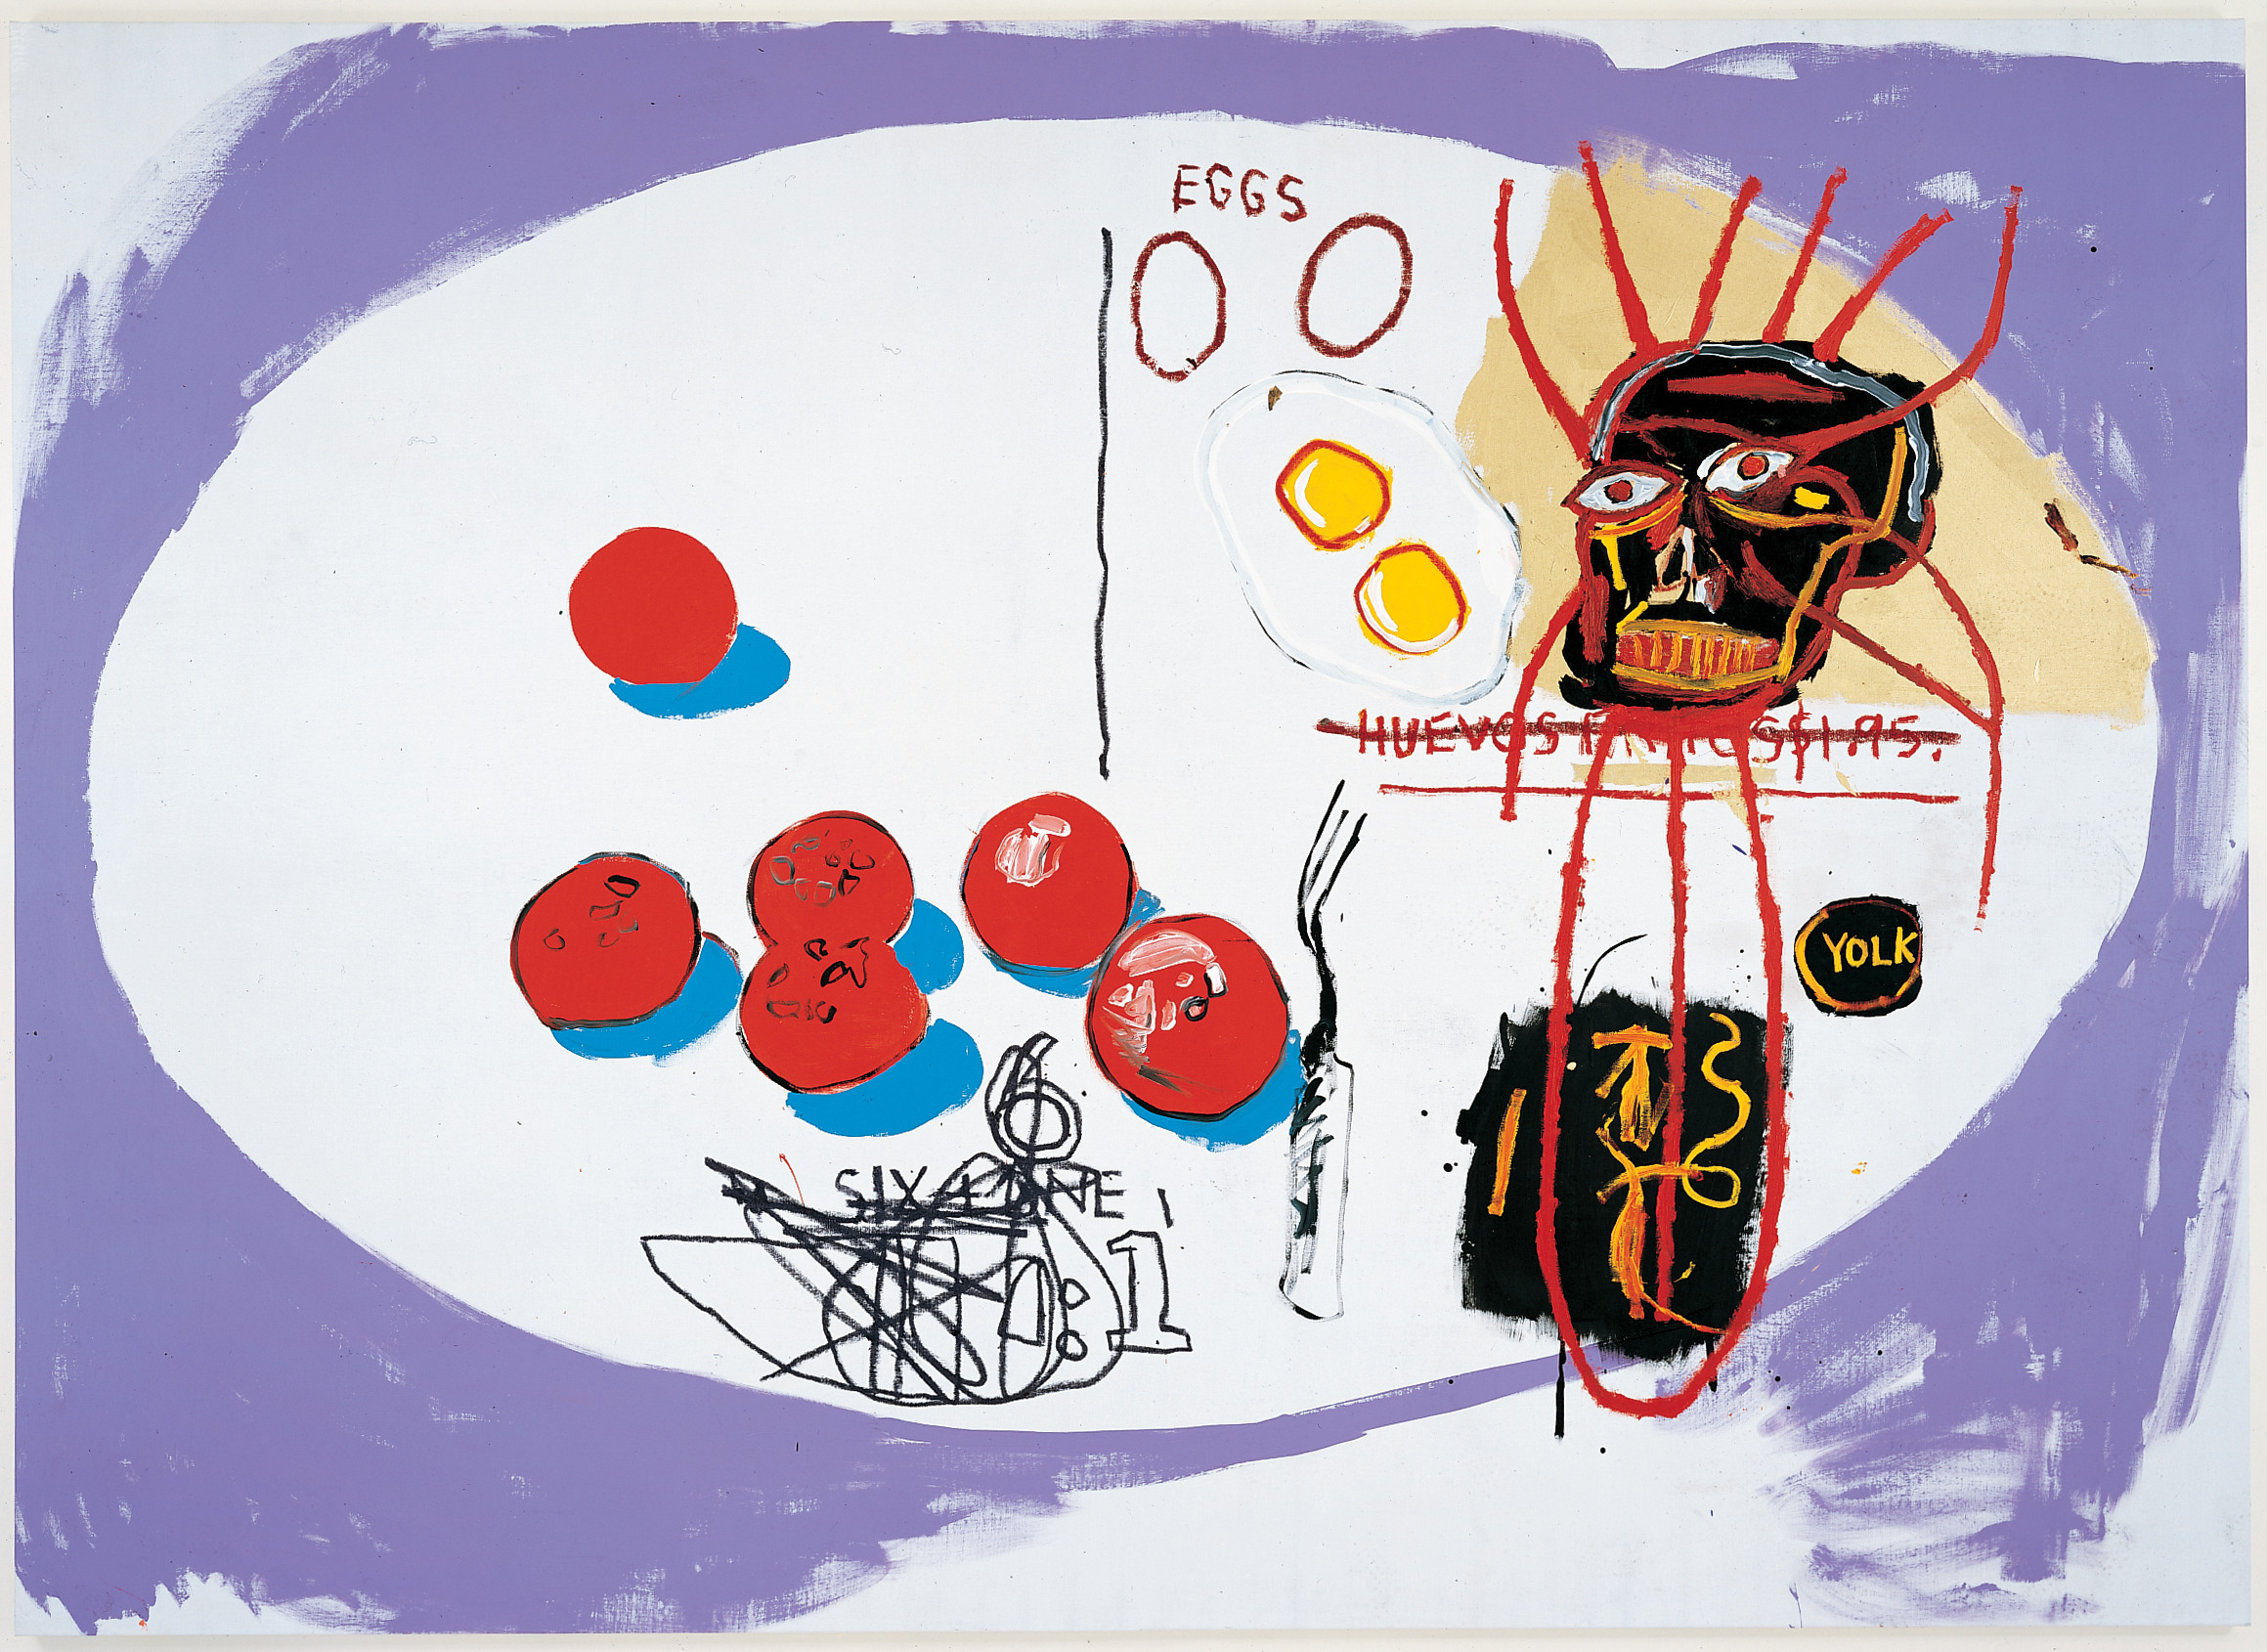 Jack Shainman Gallery to Host Show of Collaborative Works by Andy Warhol and Jean-Michel Basquiat in June